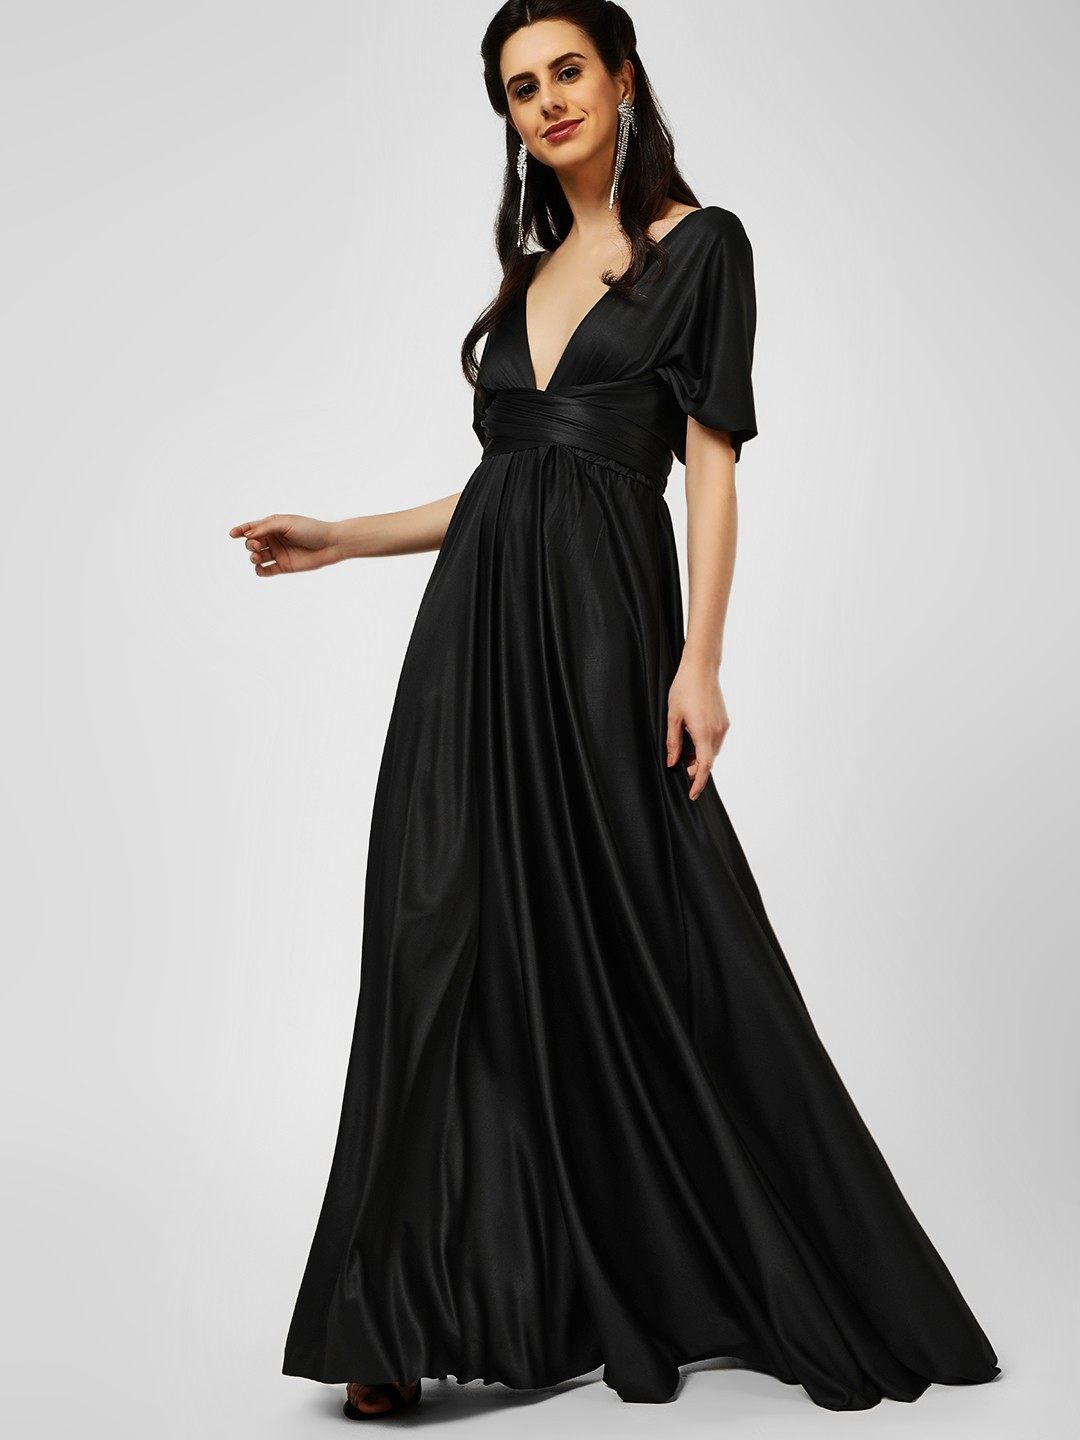 Origami Lily Black Infinity Wrap Maxi Dress 1